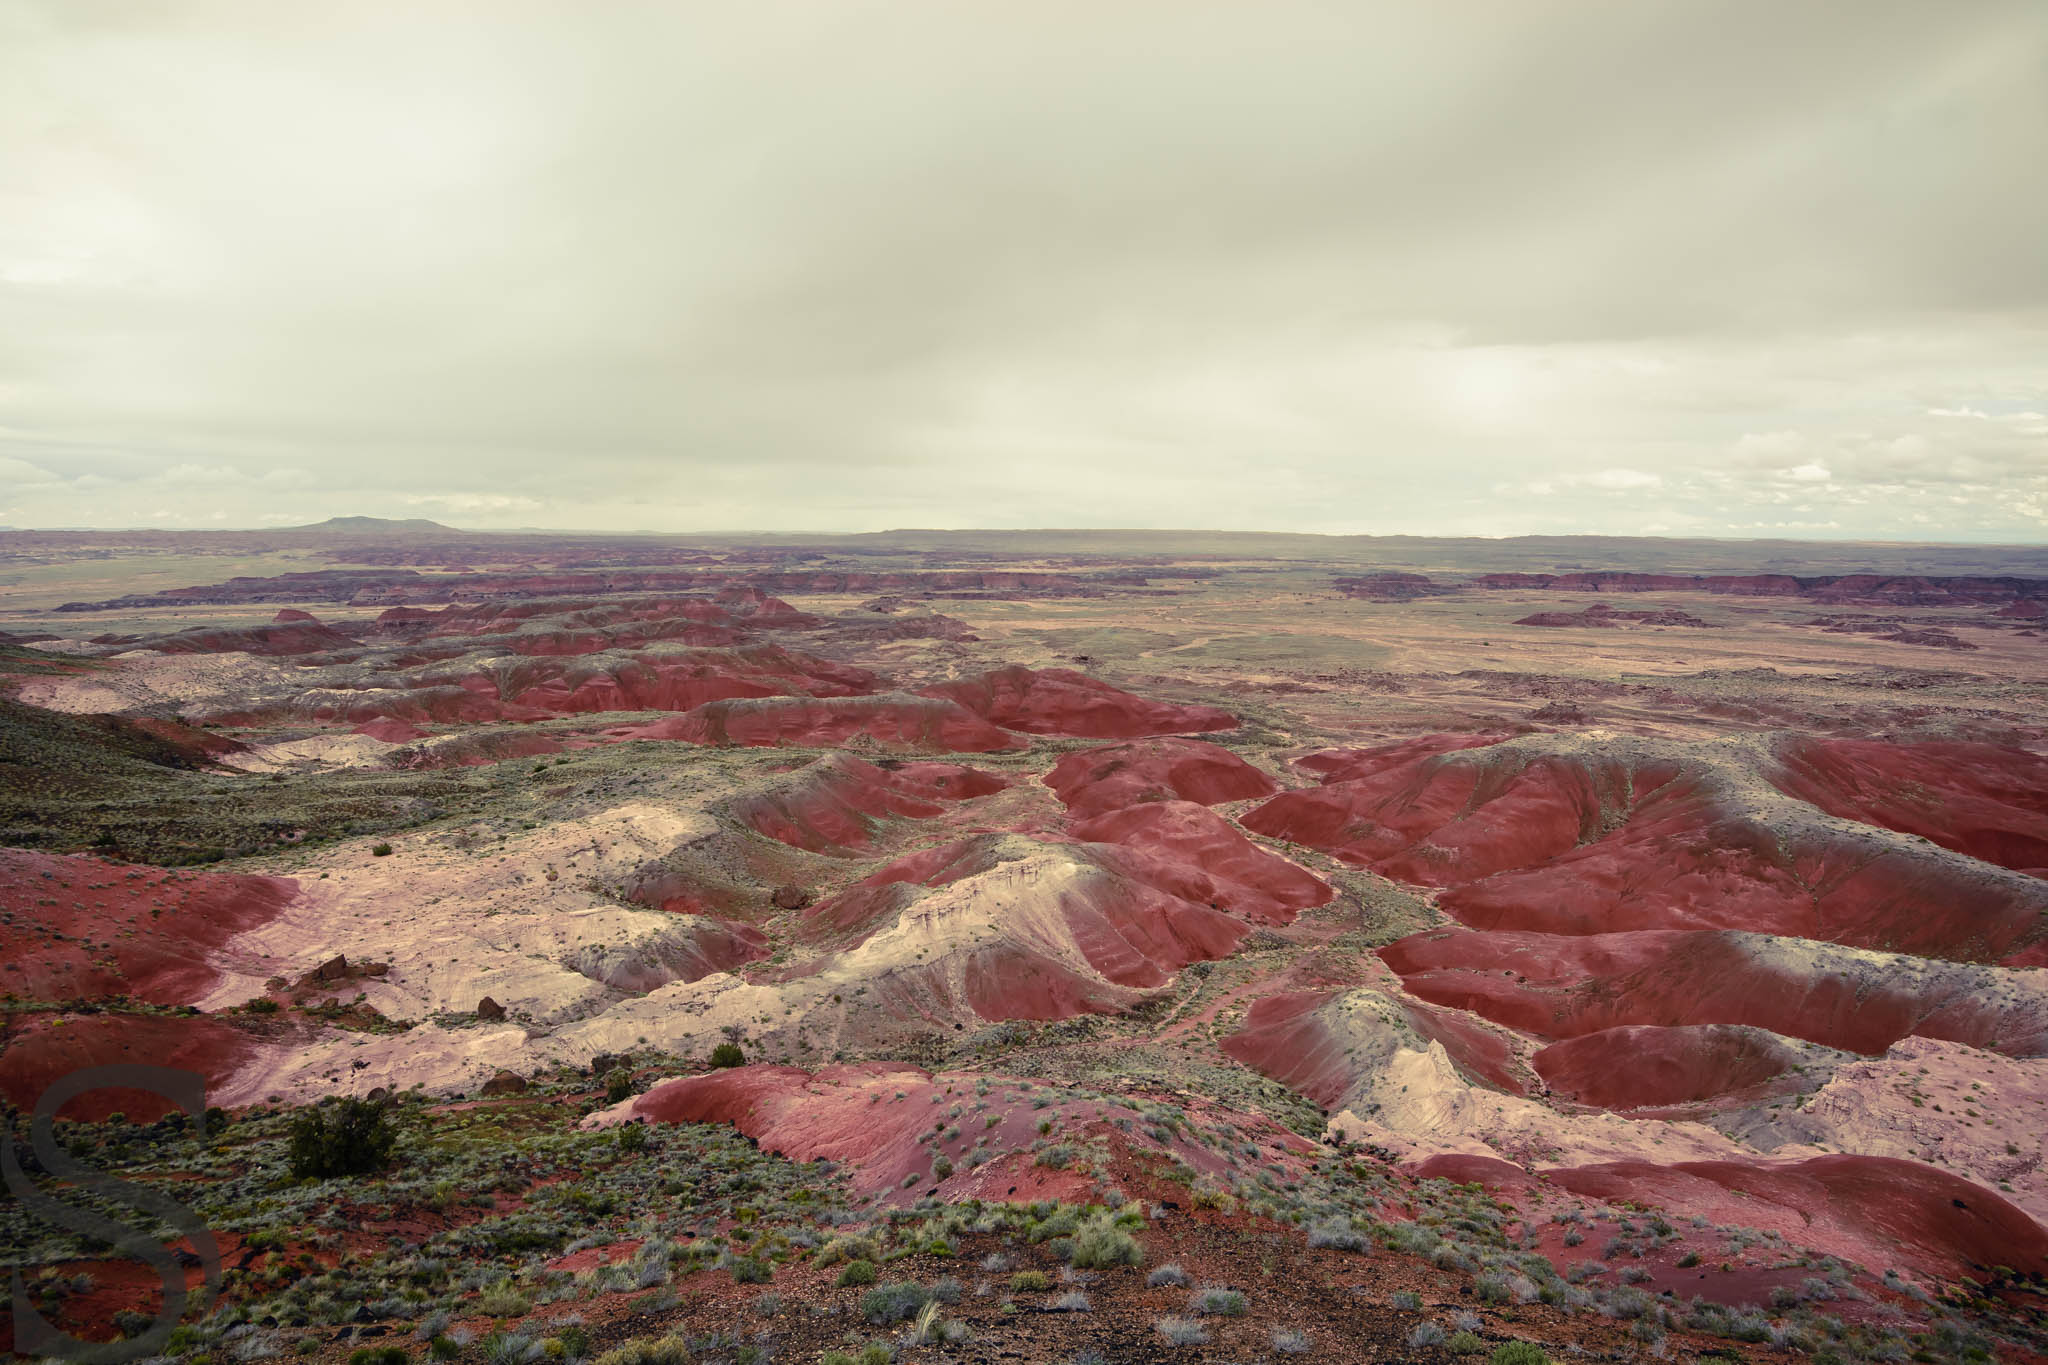 Badlands of Painted Desert as seen from Kachina Point